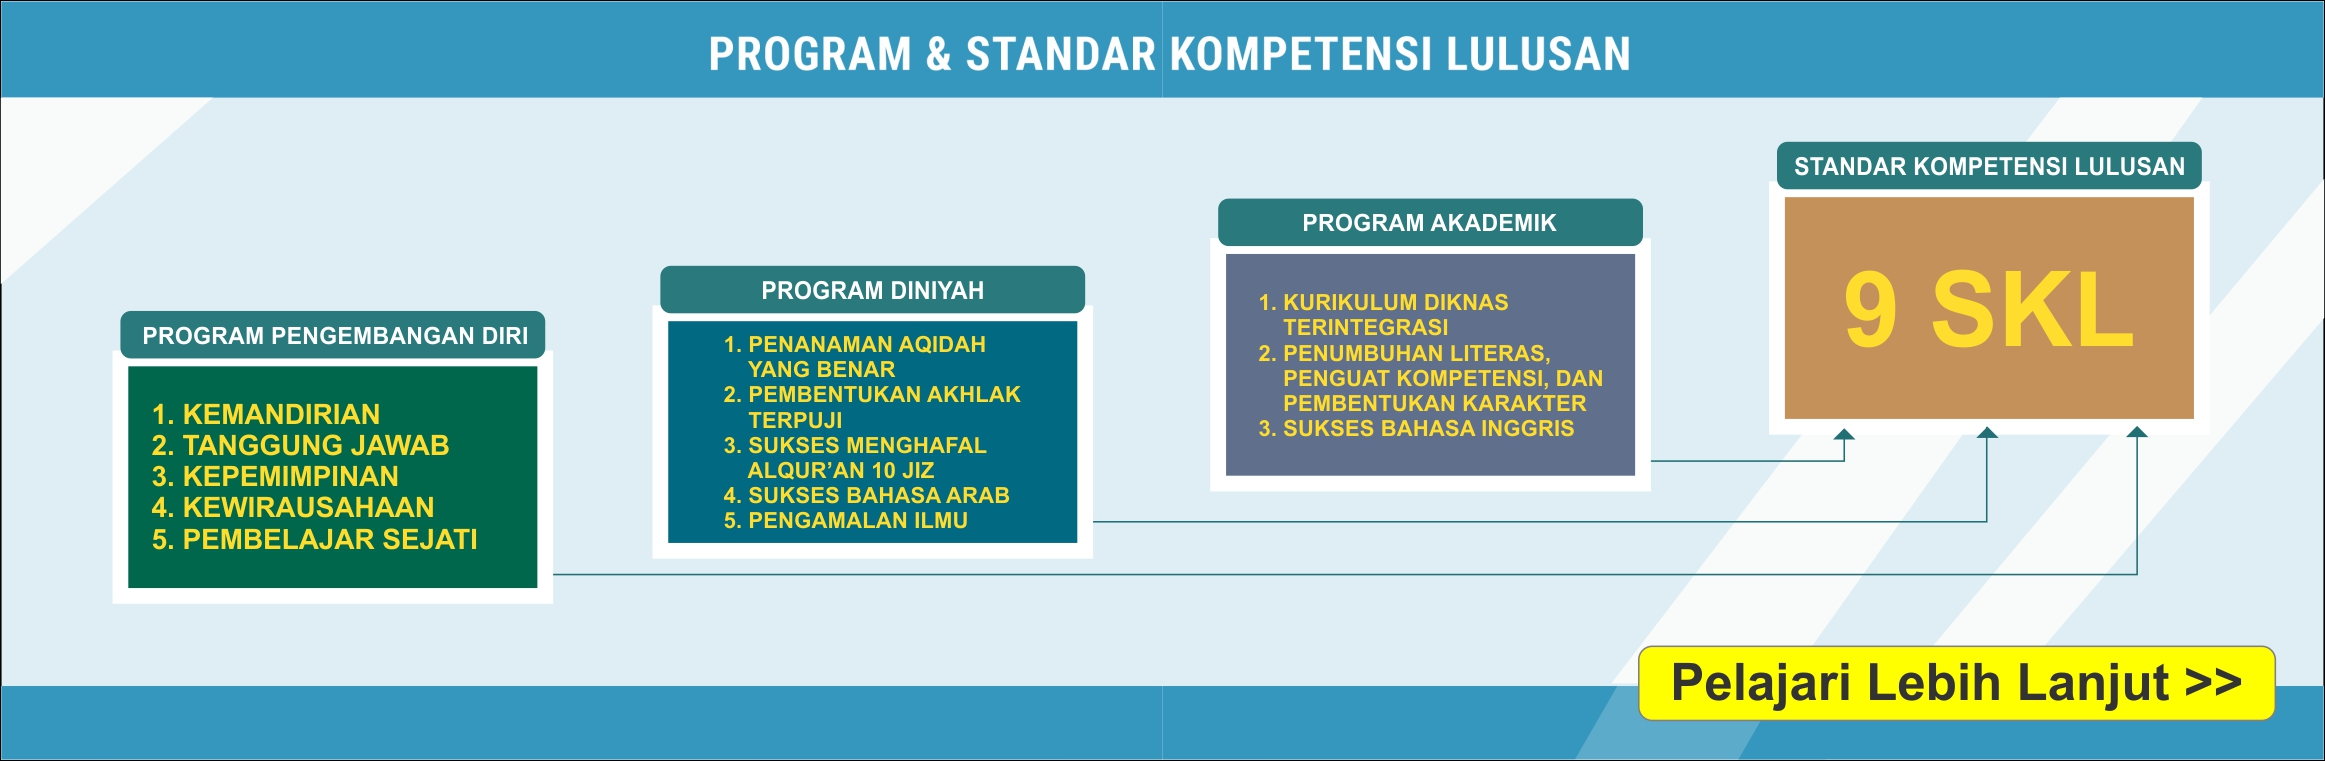 Program SMA BPIBS